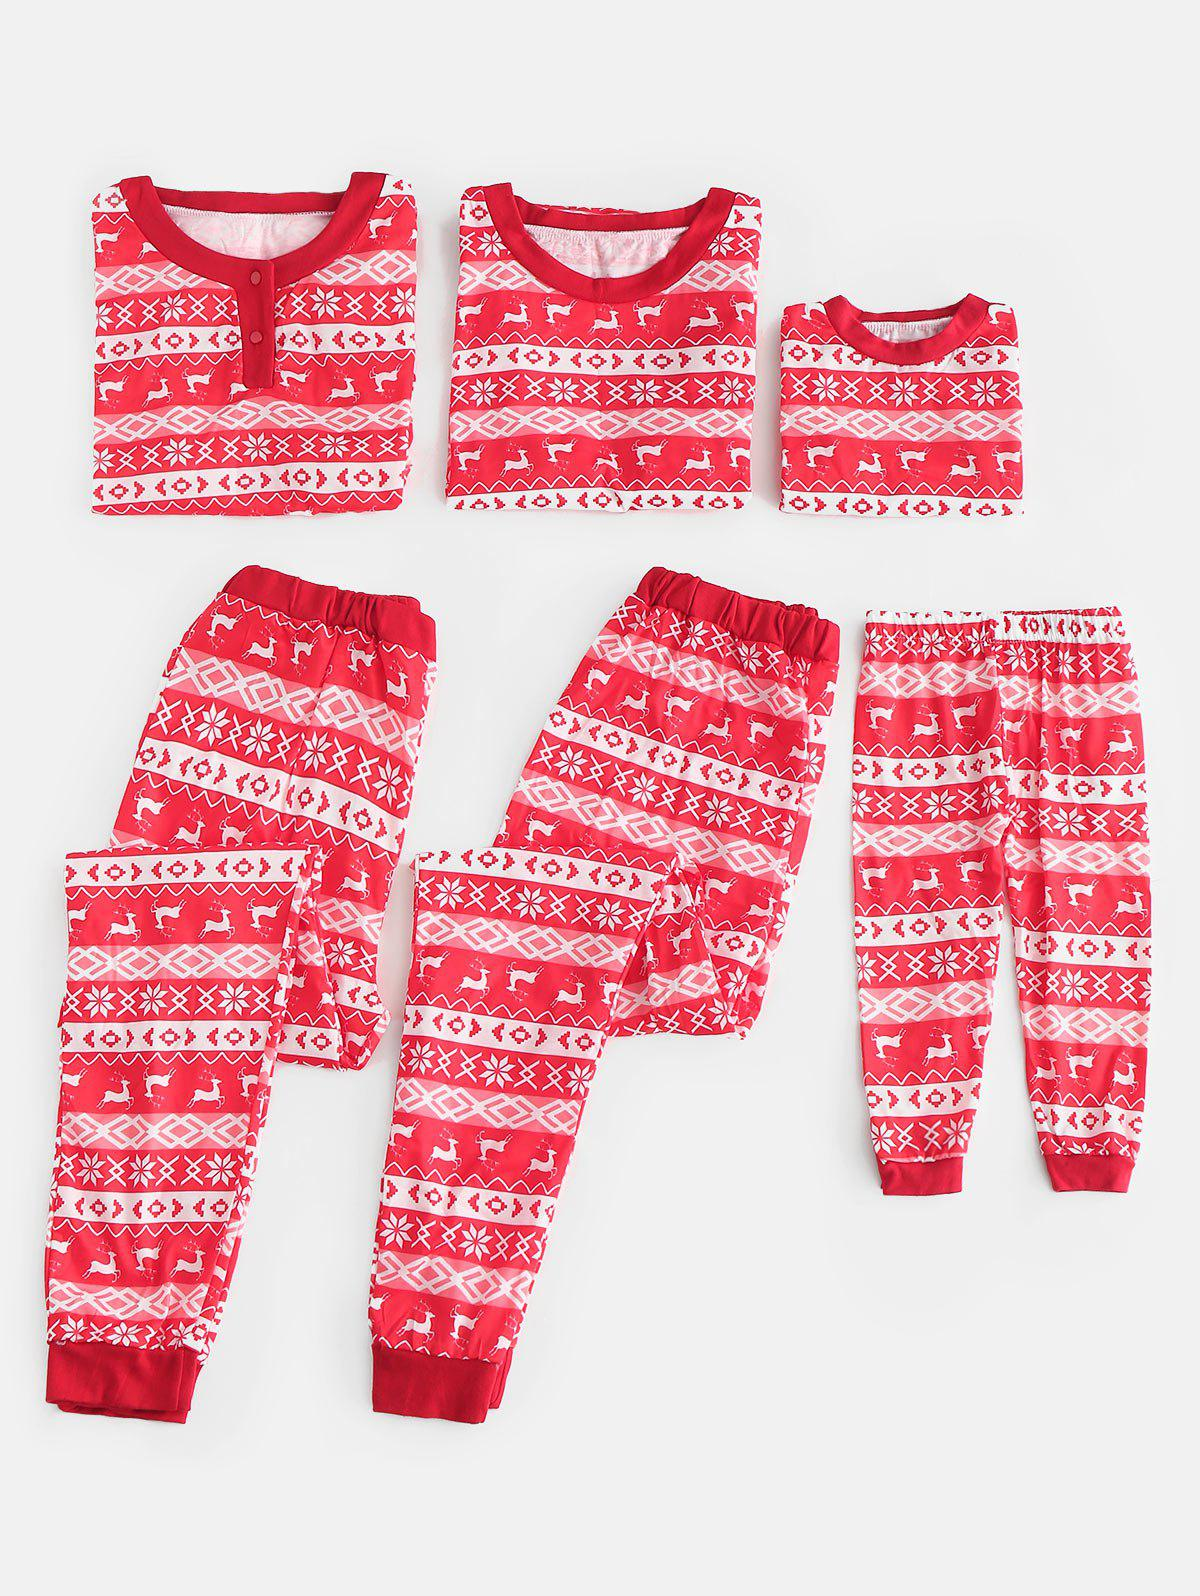 Discount Full Print Matching Family Christmas Pajamas